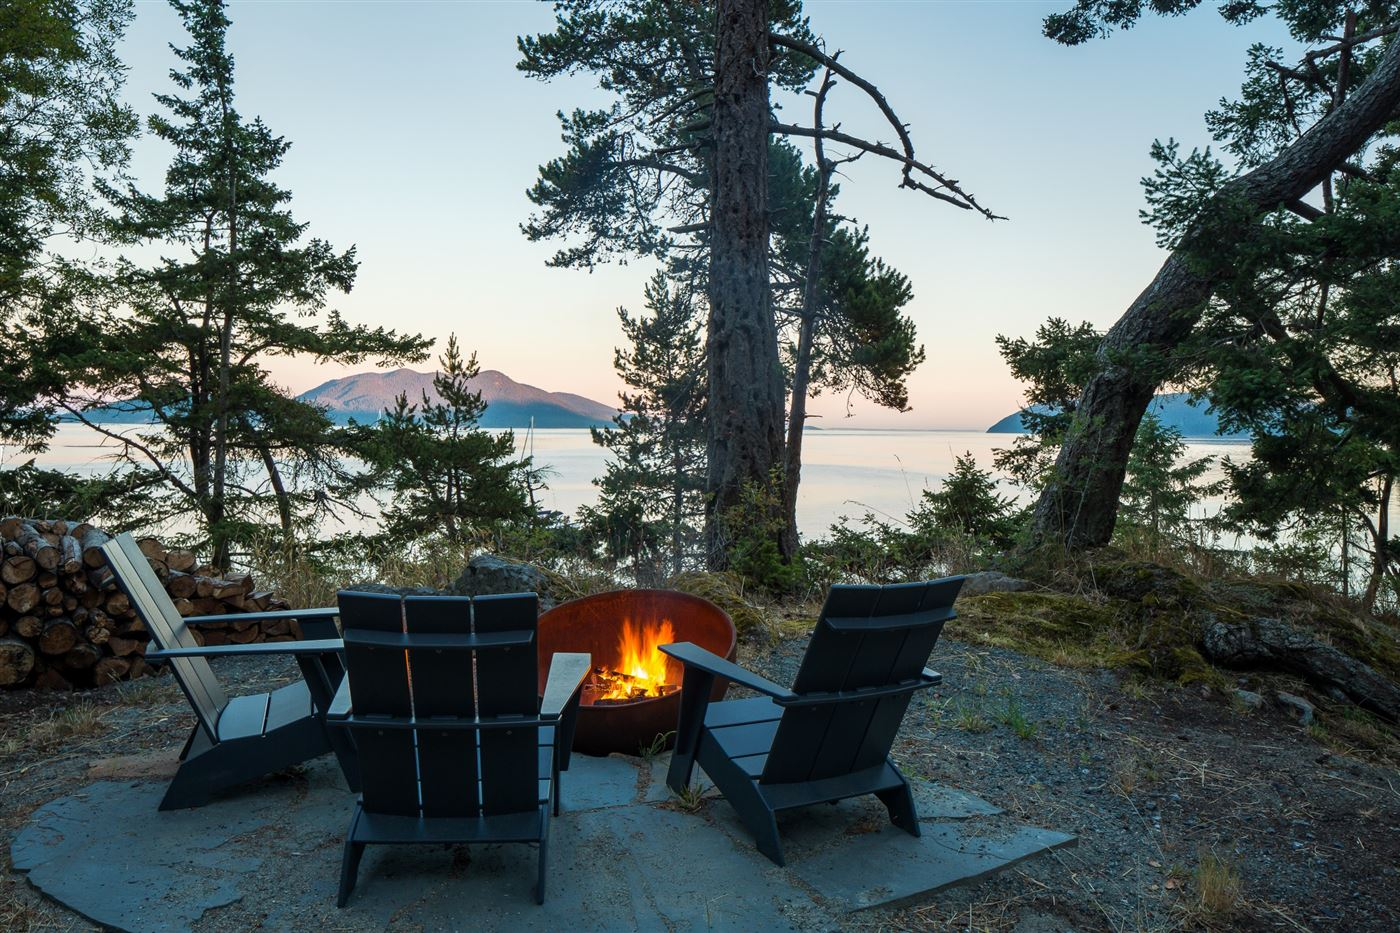 outdoor relax bonfire pit with a view to the ocean